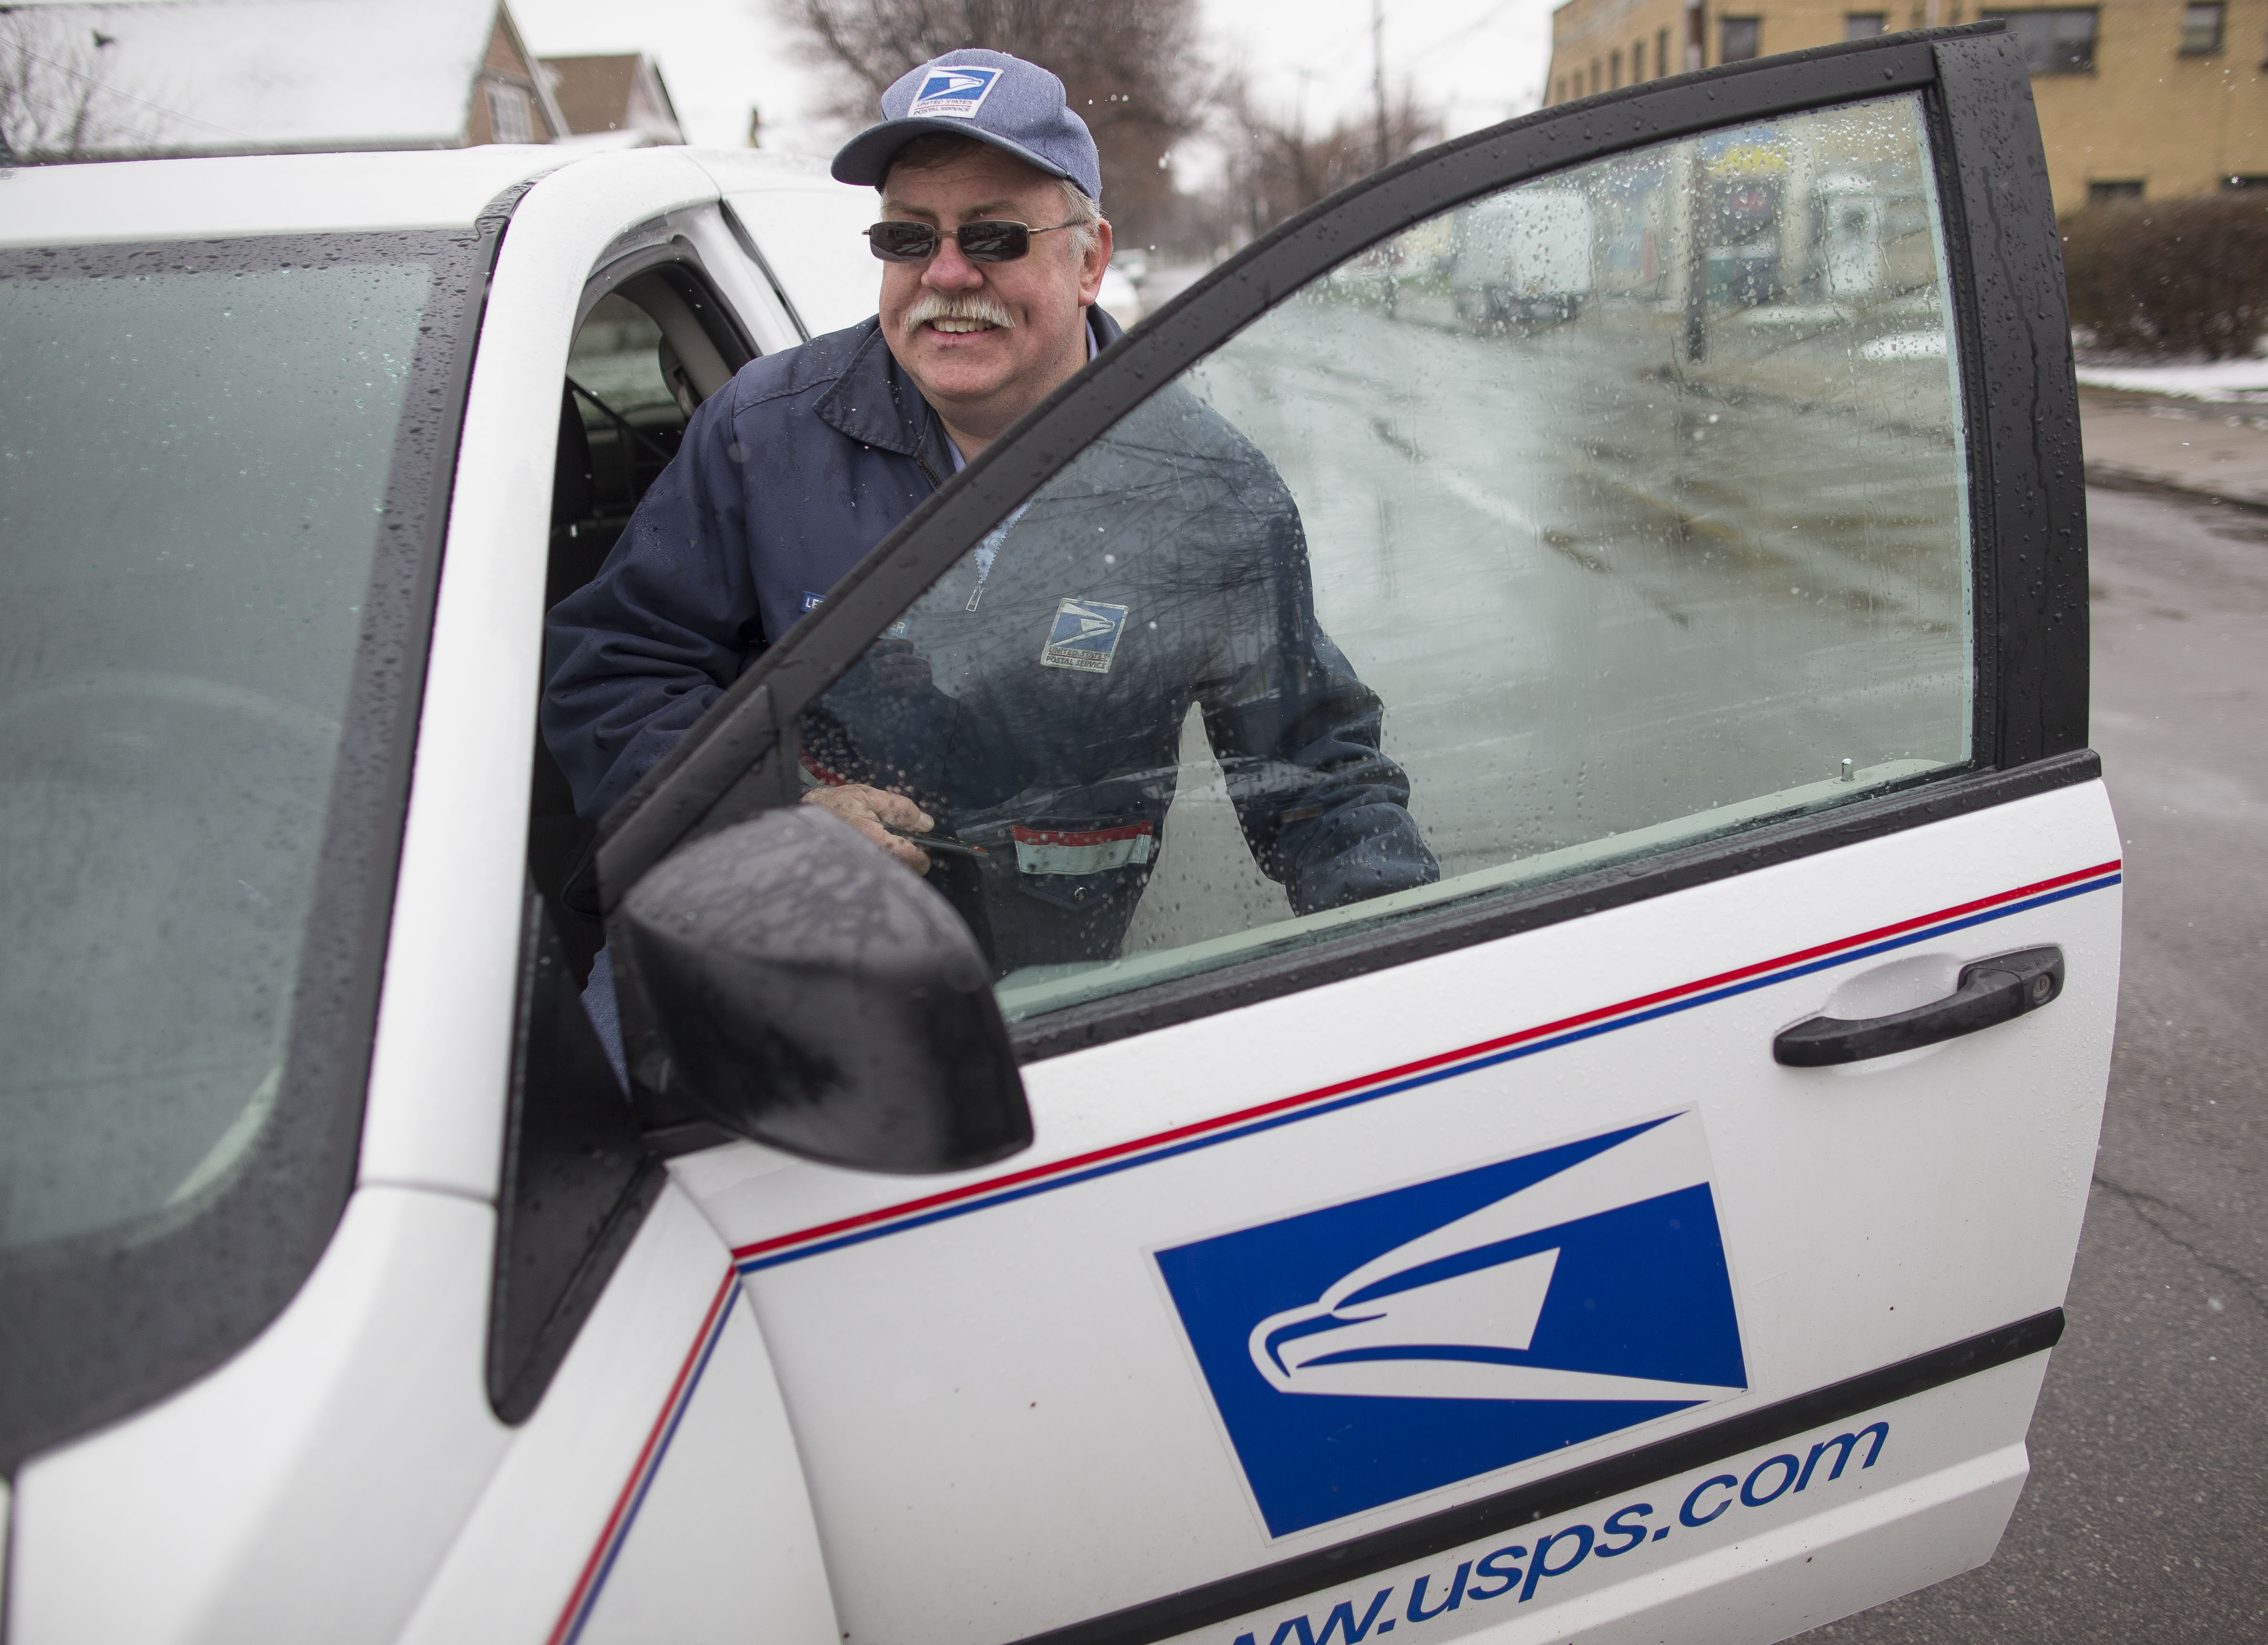 Postal carrier Randy Kowal was injured by a dog while delivering mail in 2013.  Despite two surgeries on his shoulder and near constant pain, he is back to work on light duty, Friday, April 7, 2017.  (Derek Gee/Buffalo News)